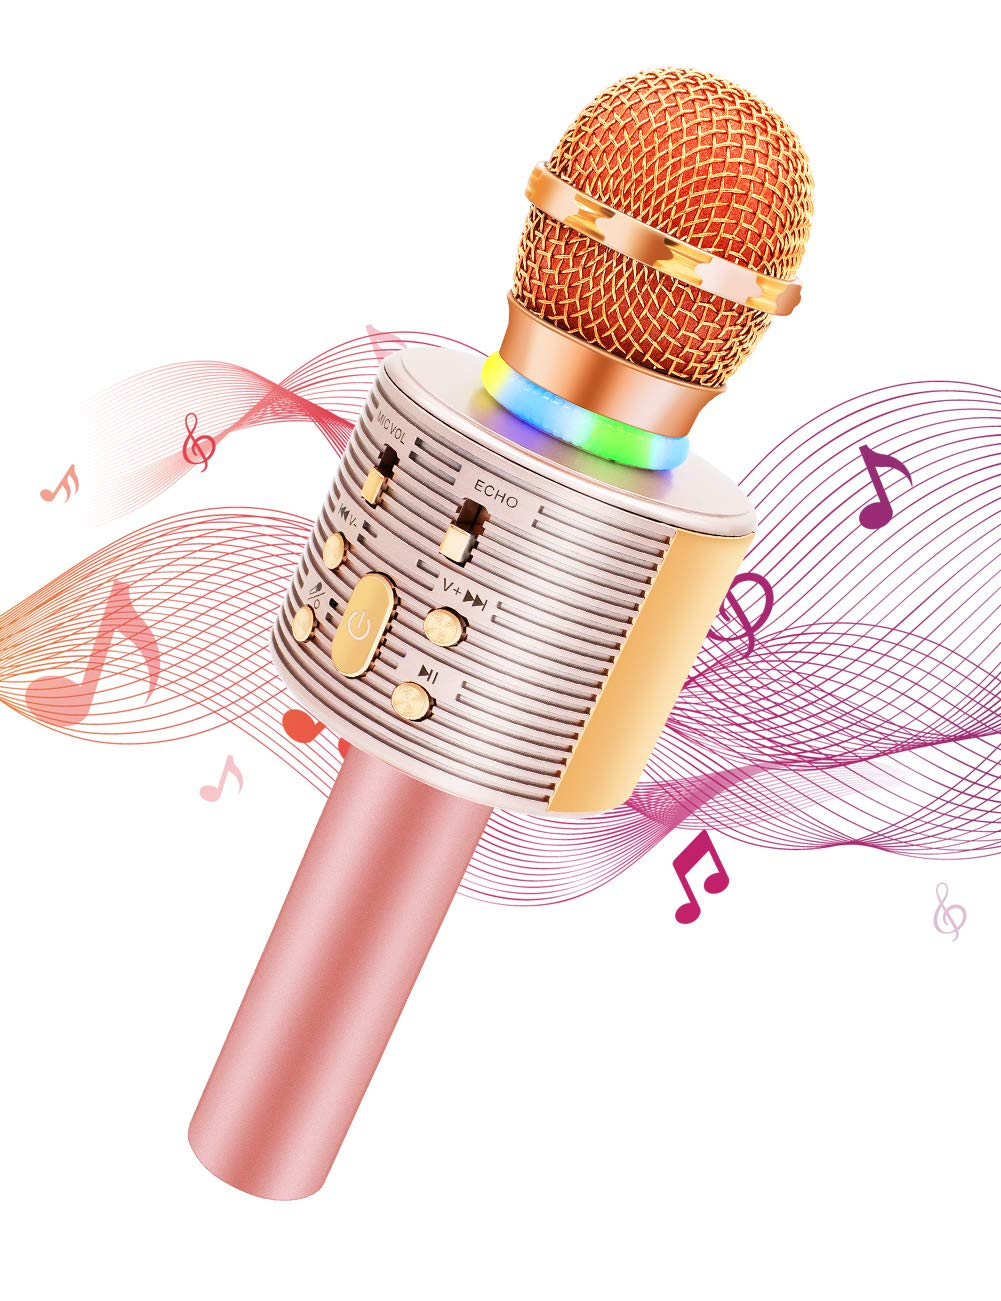 Wireless Karaoke Microphone with Speaker Pro, 3-in-1 Portable Handheld Karaoke Mic Home Party Birthday Gifts for Kids Speaker Machine for Android/ PC /phone(Rose Gold)